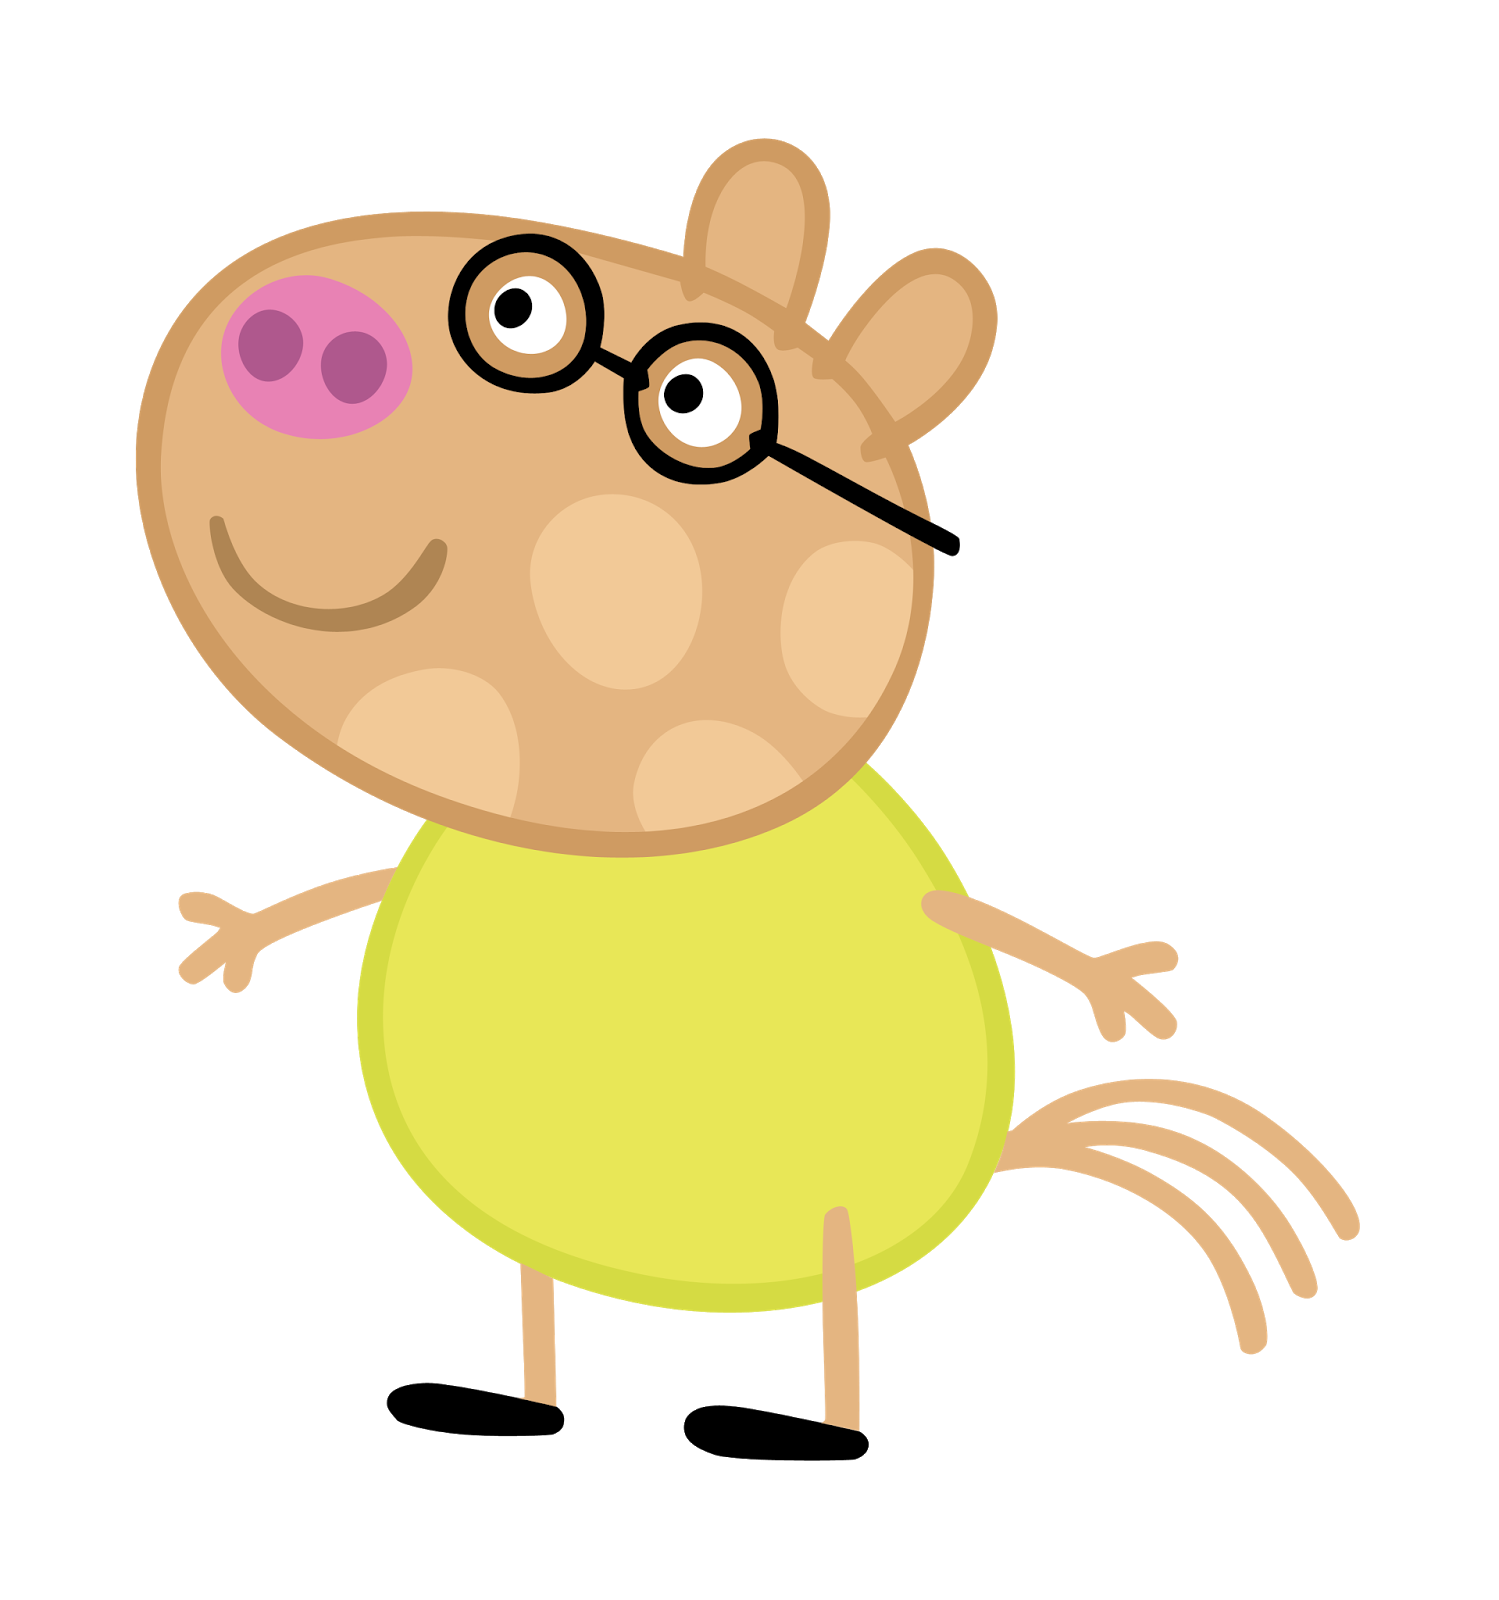 Cartoon characters peppa png. Families clipart pig